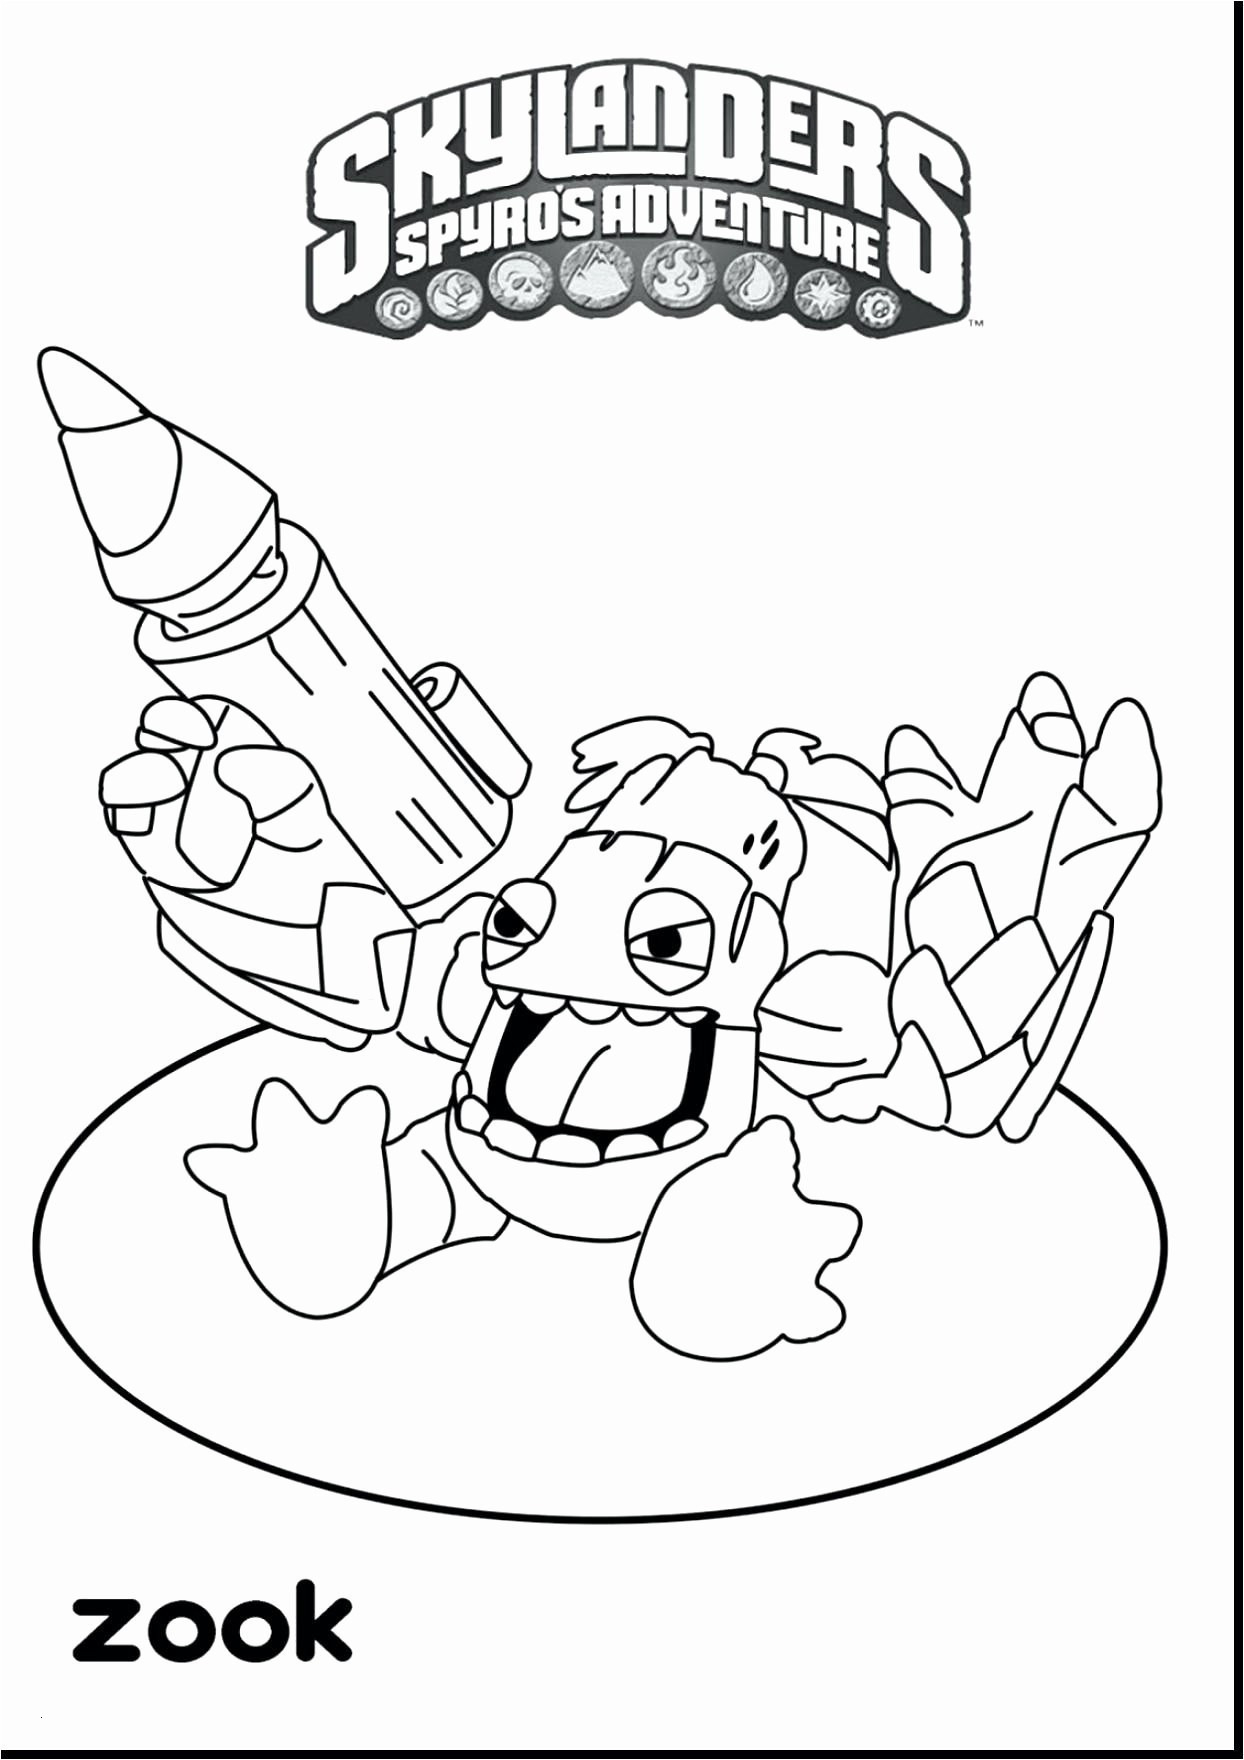 turn pictures into coloring pages for free Collection-Coloring Pages Dragons Cool Coloring Page Inspirational Witch Coloring Pages New Crayola Pages 0d Coloring 13-e